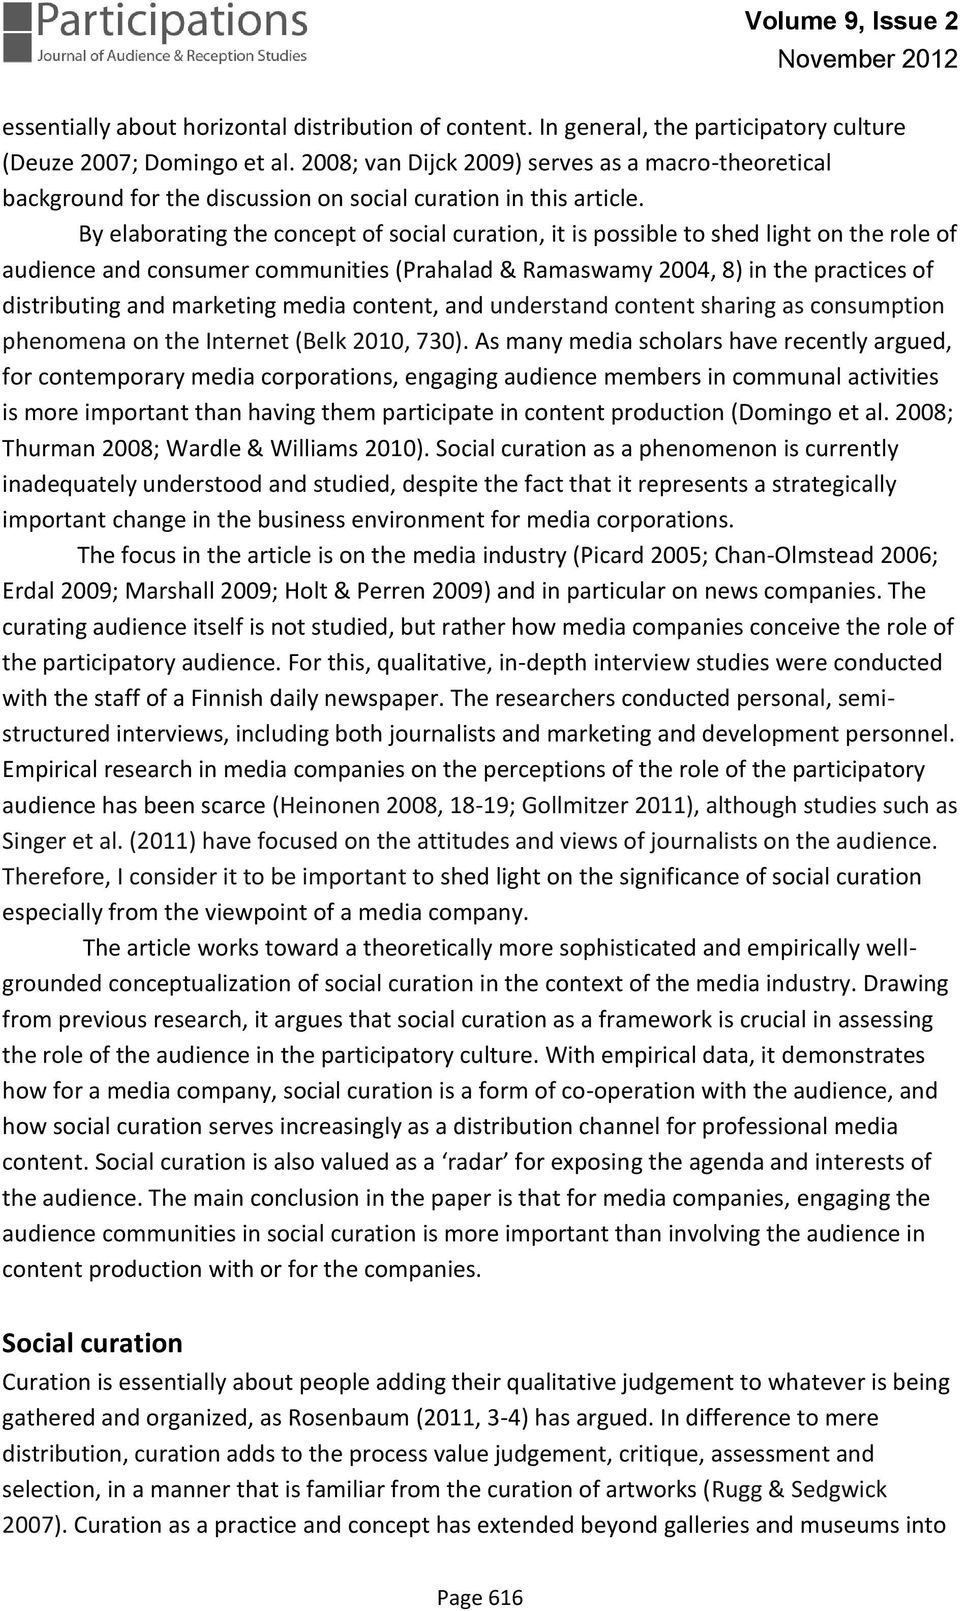 By elaborating the concept of social curation, it is possible to shed light on the role of audience and consumer communities (Prahalad & Ramaswamy 2004, 8) in the practices of distributing and